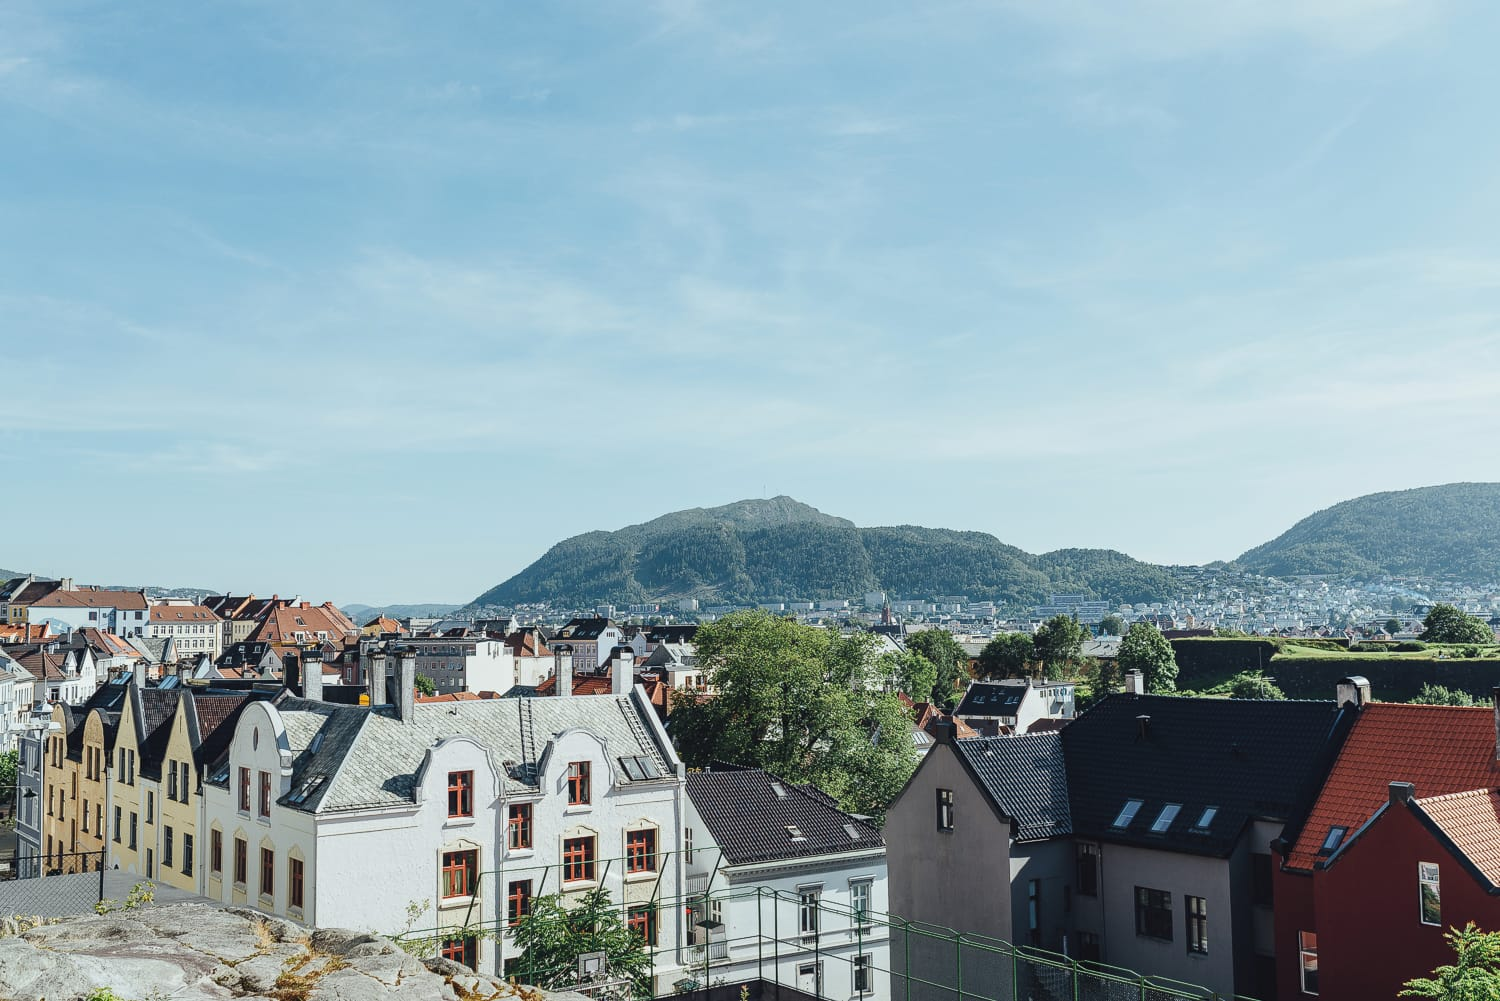 Bergen, a picturesque city between mountains